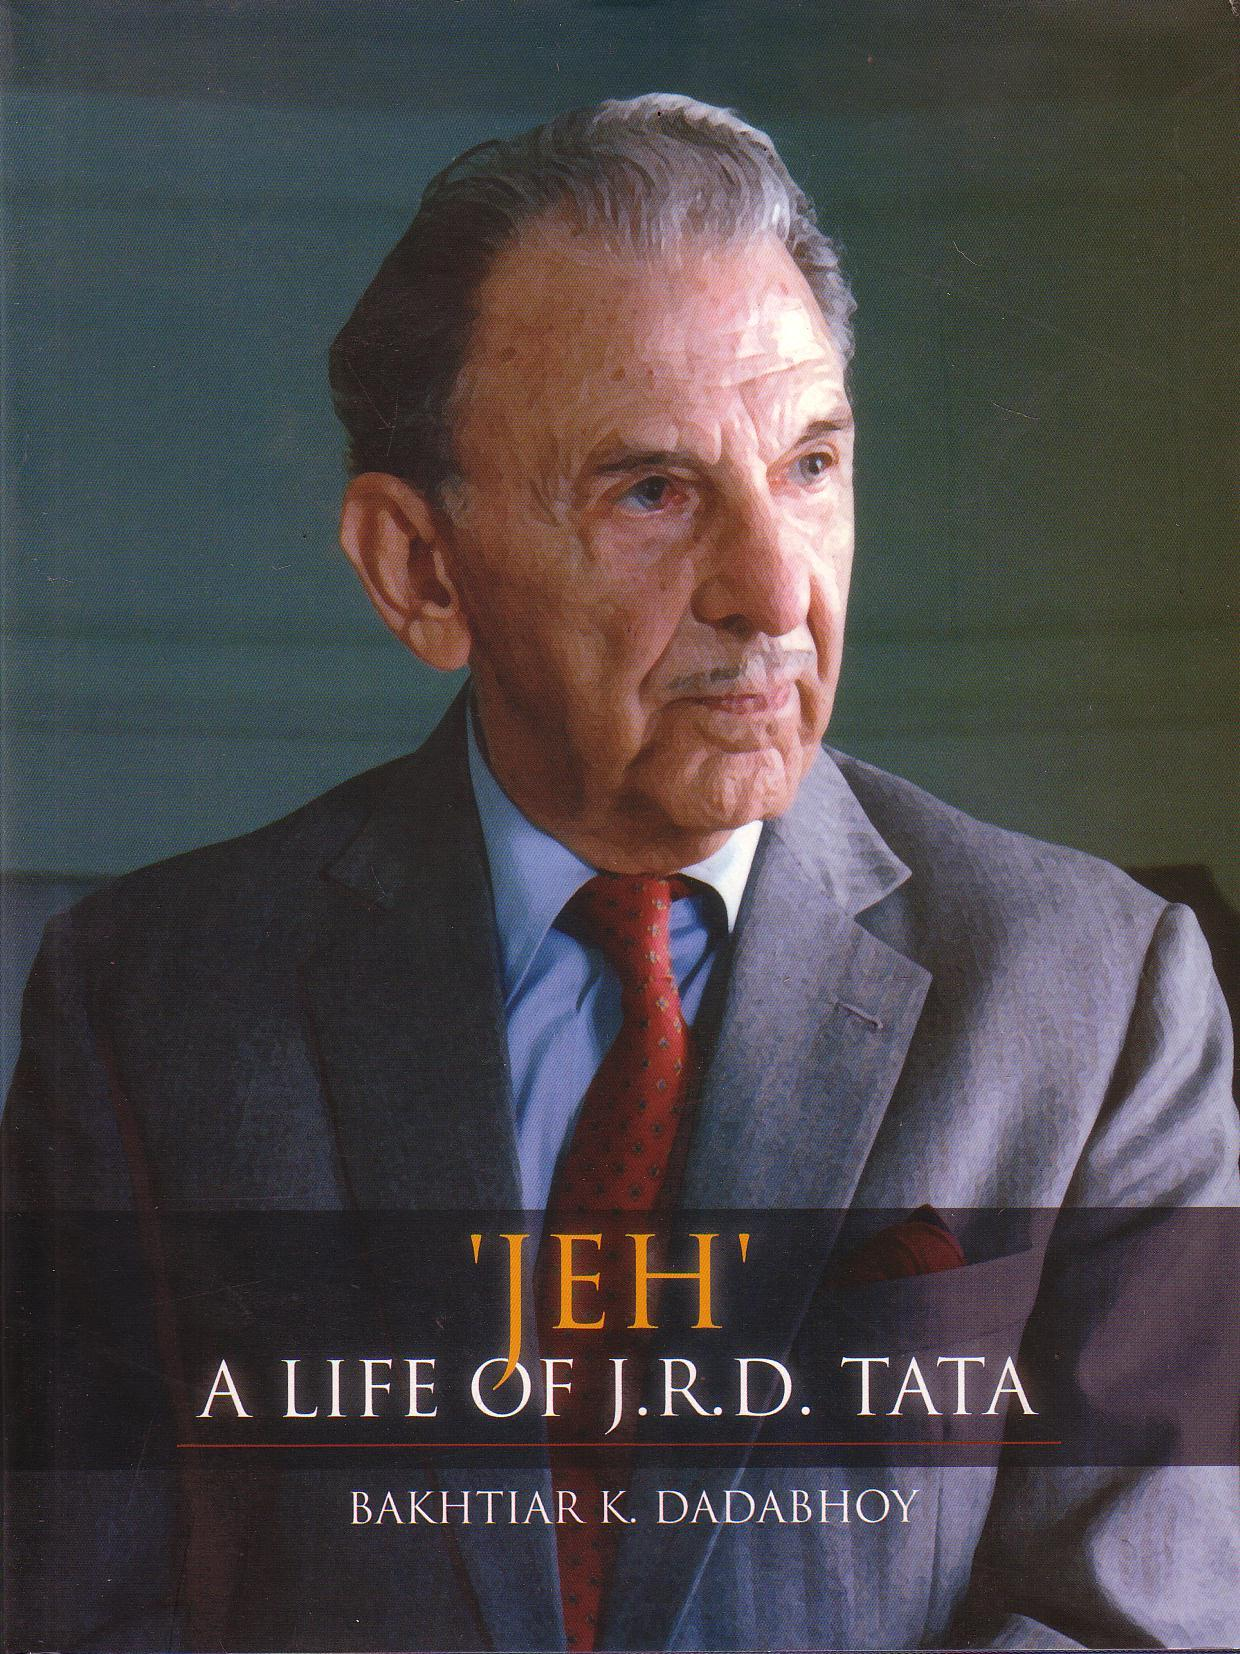 Jeh' A Life Of J. R. D. Tata